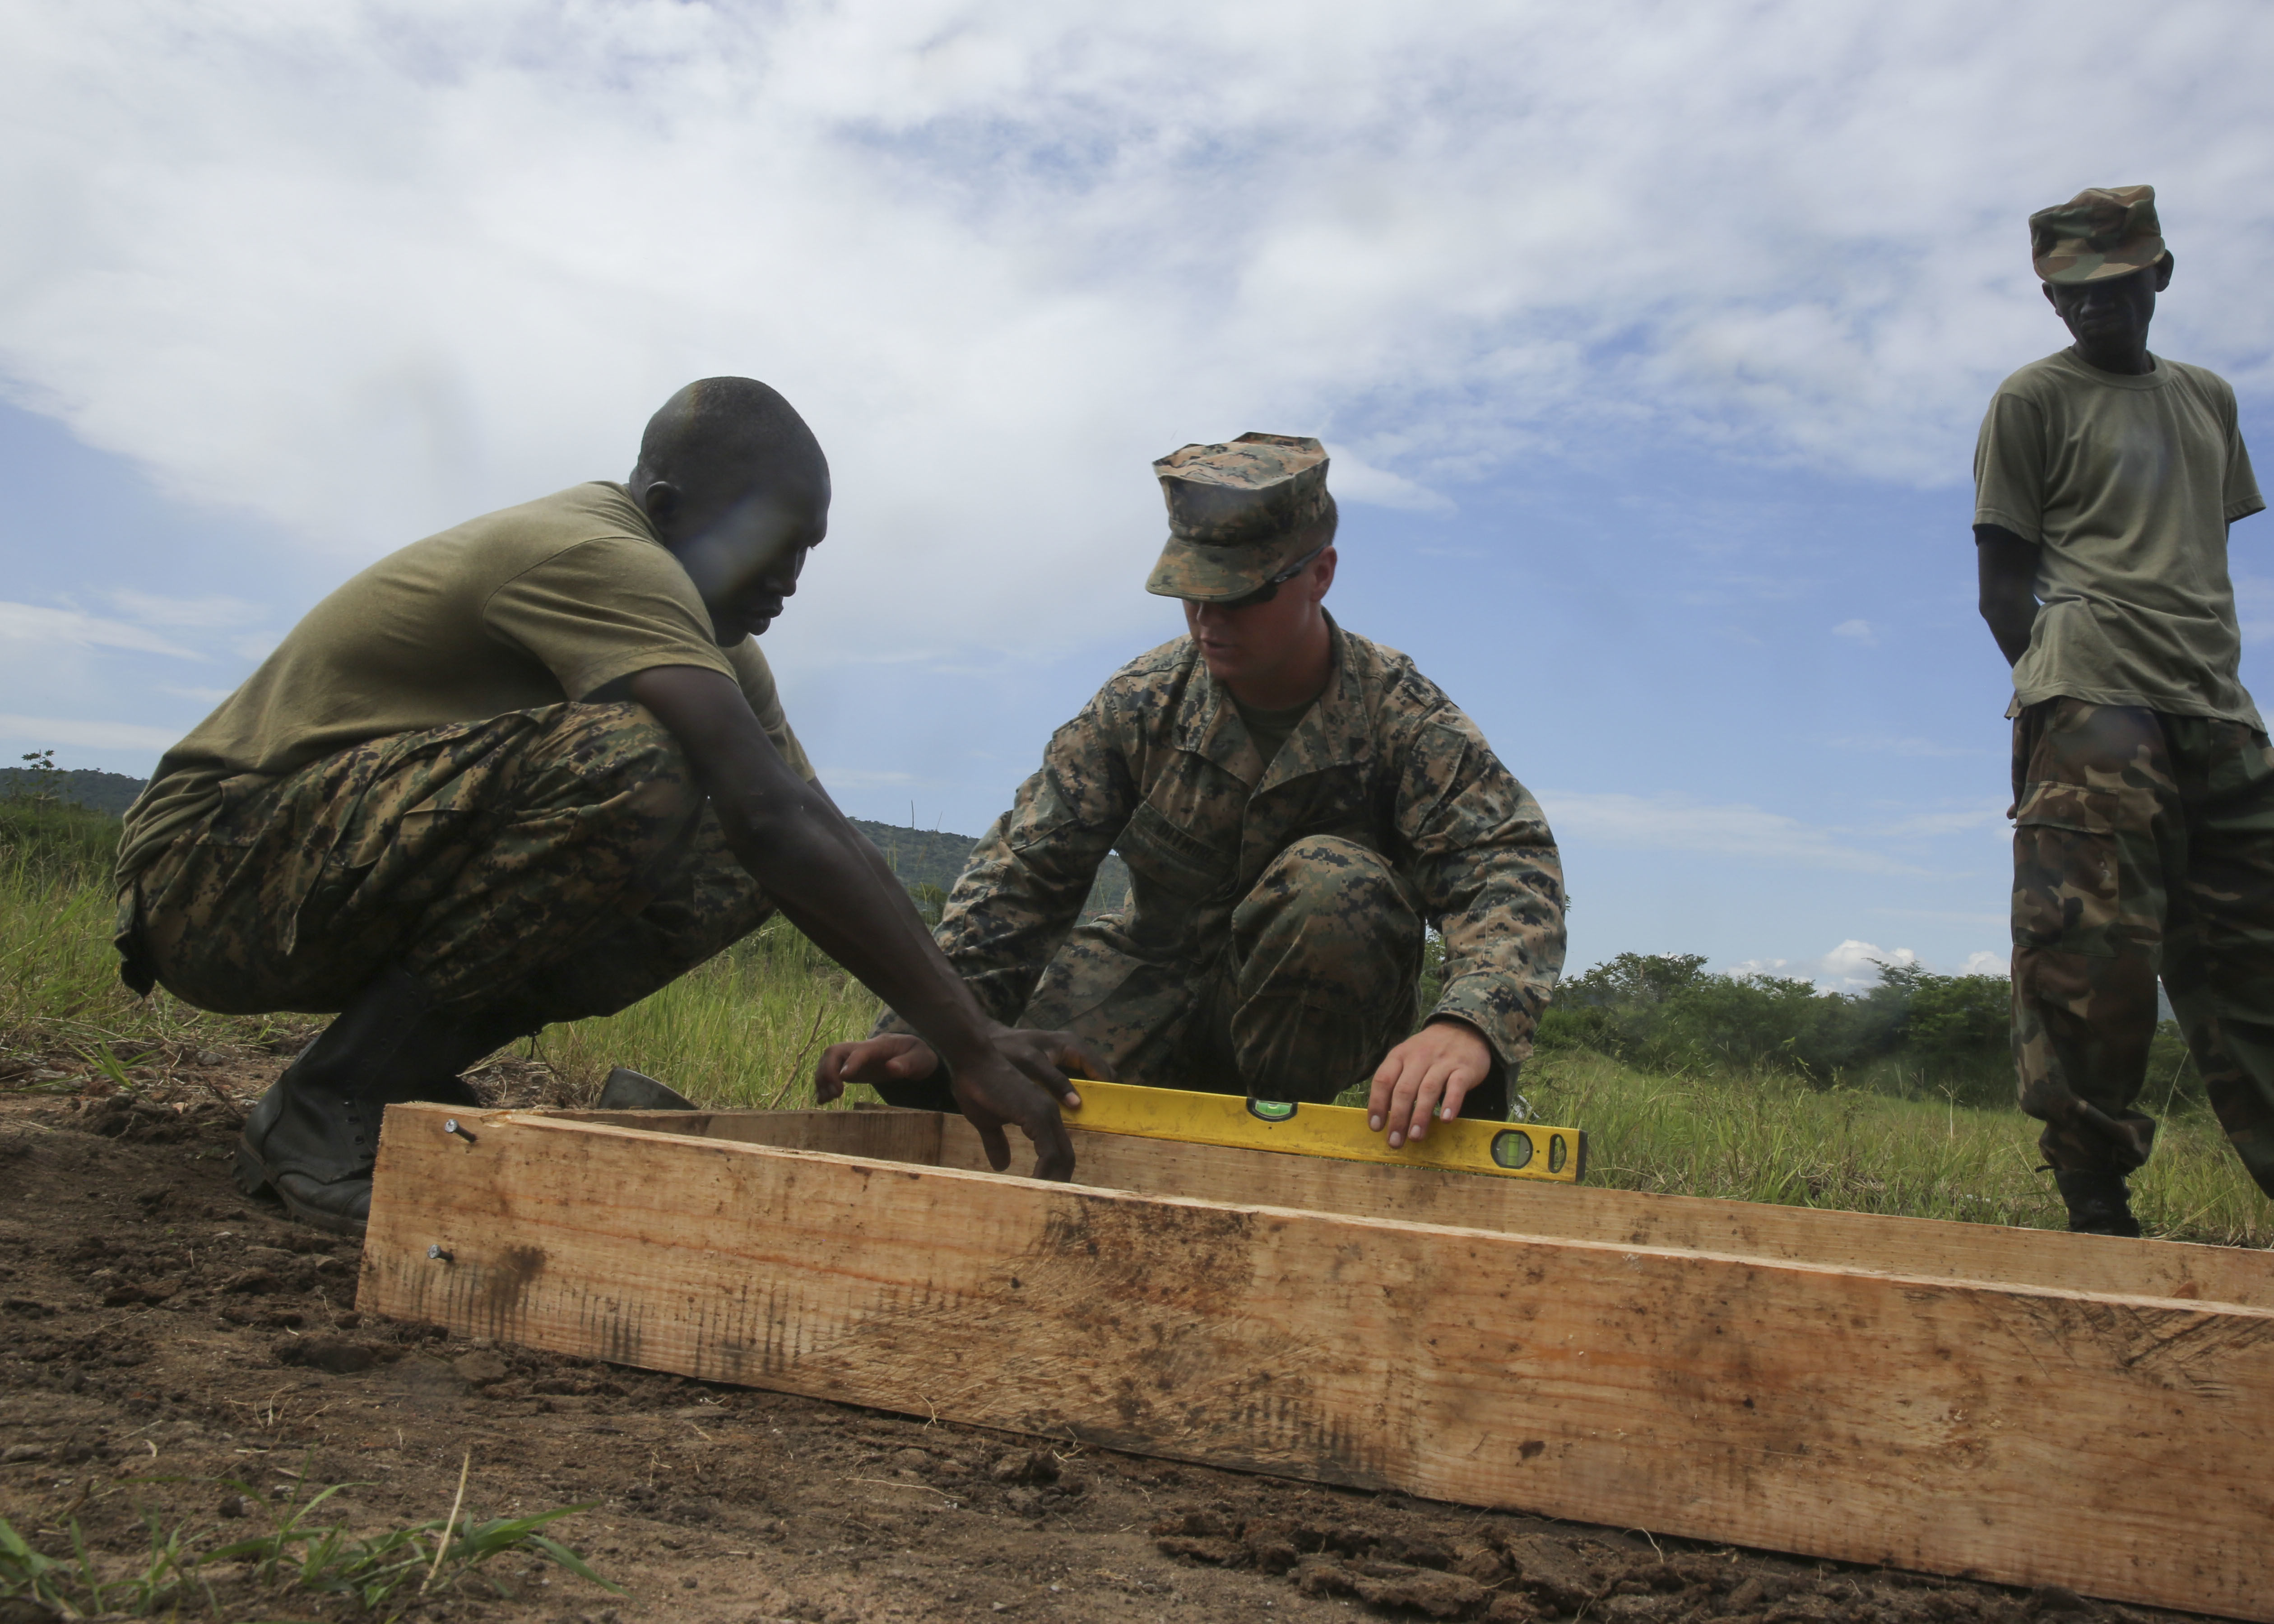 U.S. Marine Cpl. Brandon Ditmire, a combat engineer with Special-Purpose Marine Air-Ground Task Force Crisis Response-Africa, assists a Uganda People's Defense Force soldier level the base for a concrete slab during a civil engineering exercise at Camp Singo, Nov. 16, 2015. The exercise helps the partner nations fortify their civil engineering skills while strengthening the bond between the two. (U.S. Marine Corps photo by Cpl. Olivia McDonald/Released)